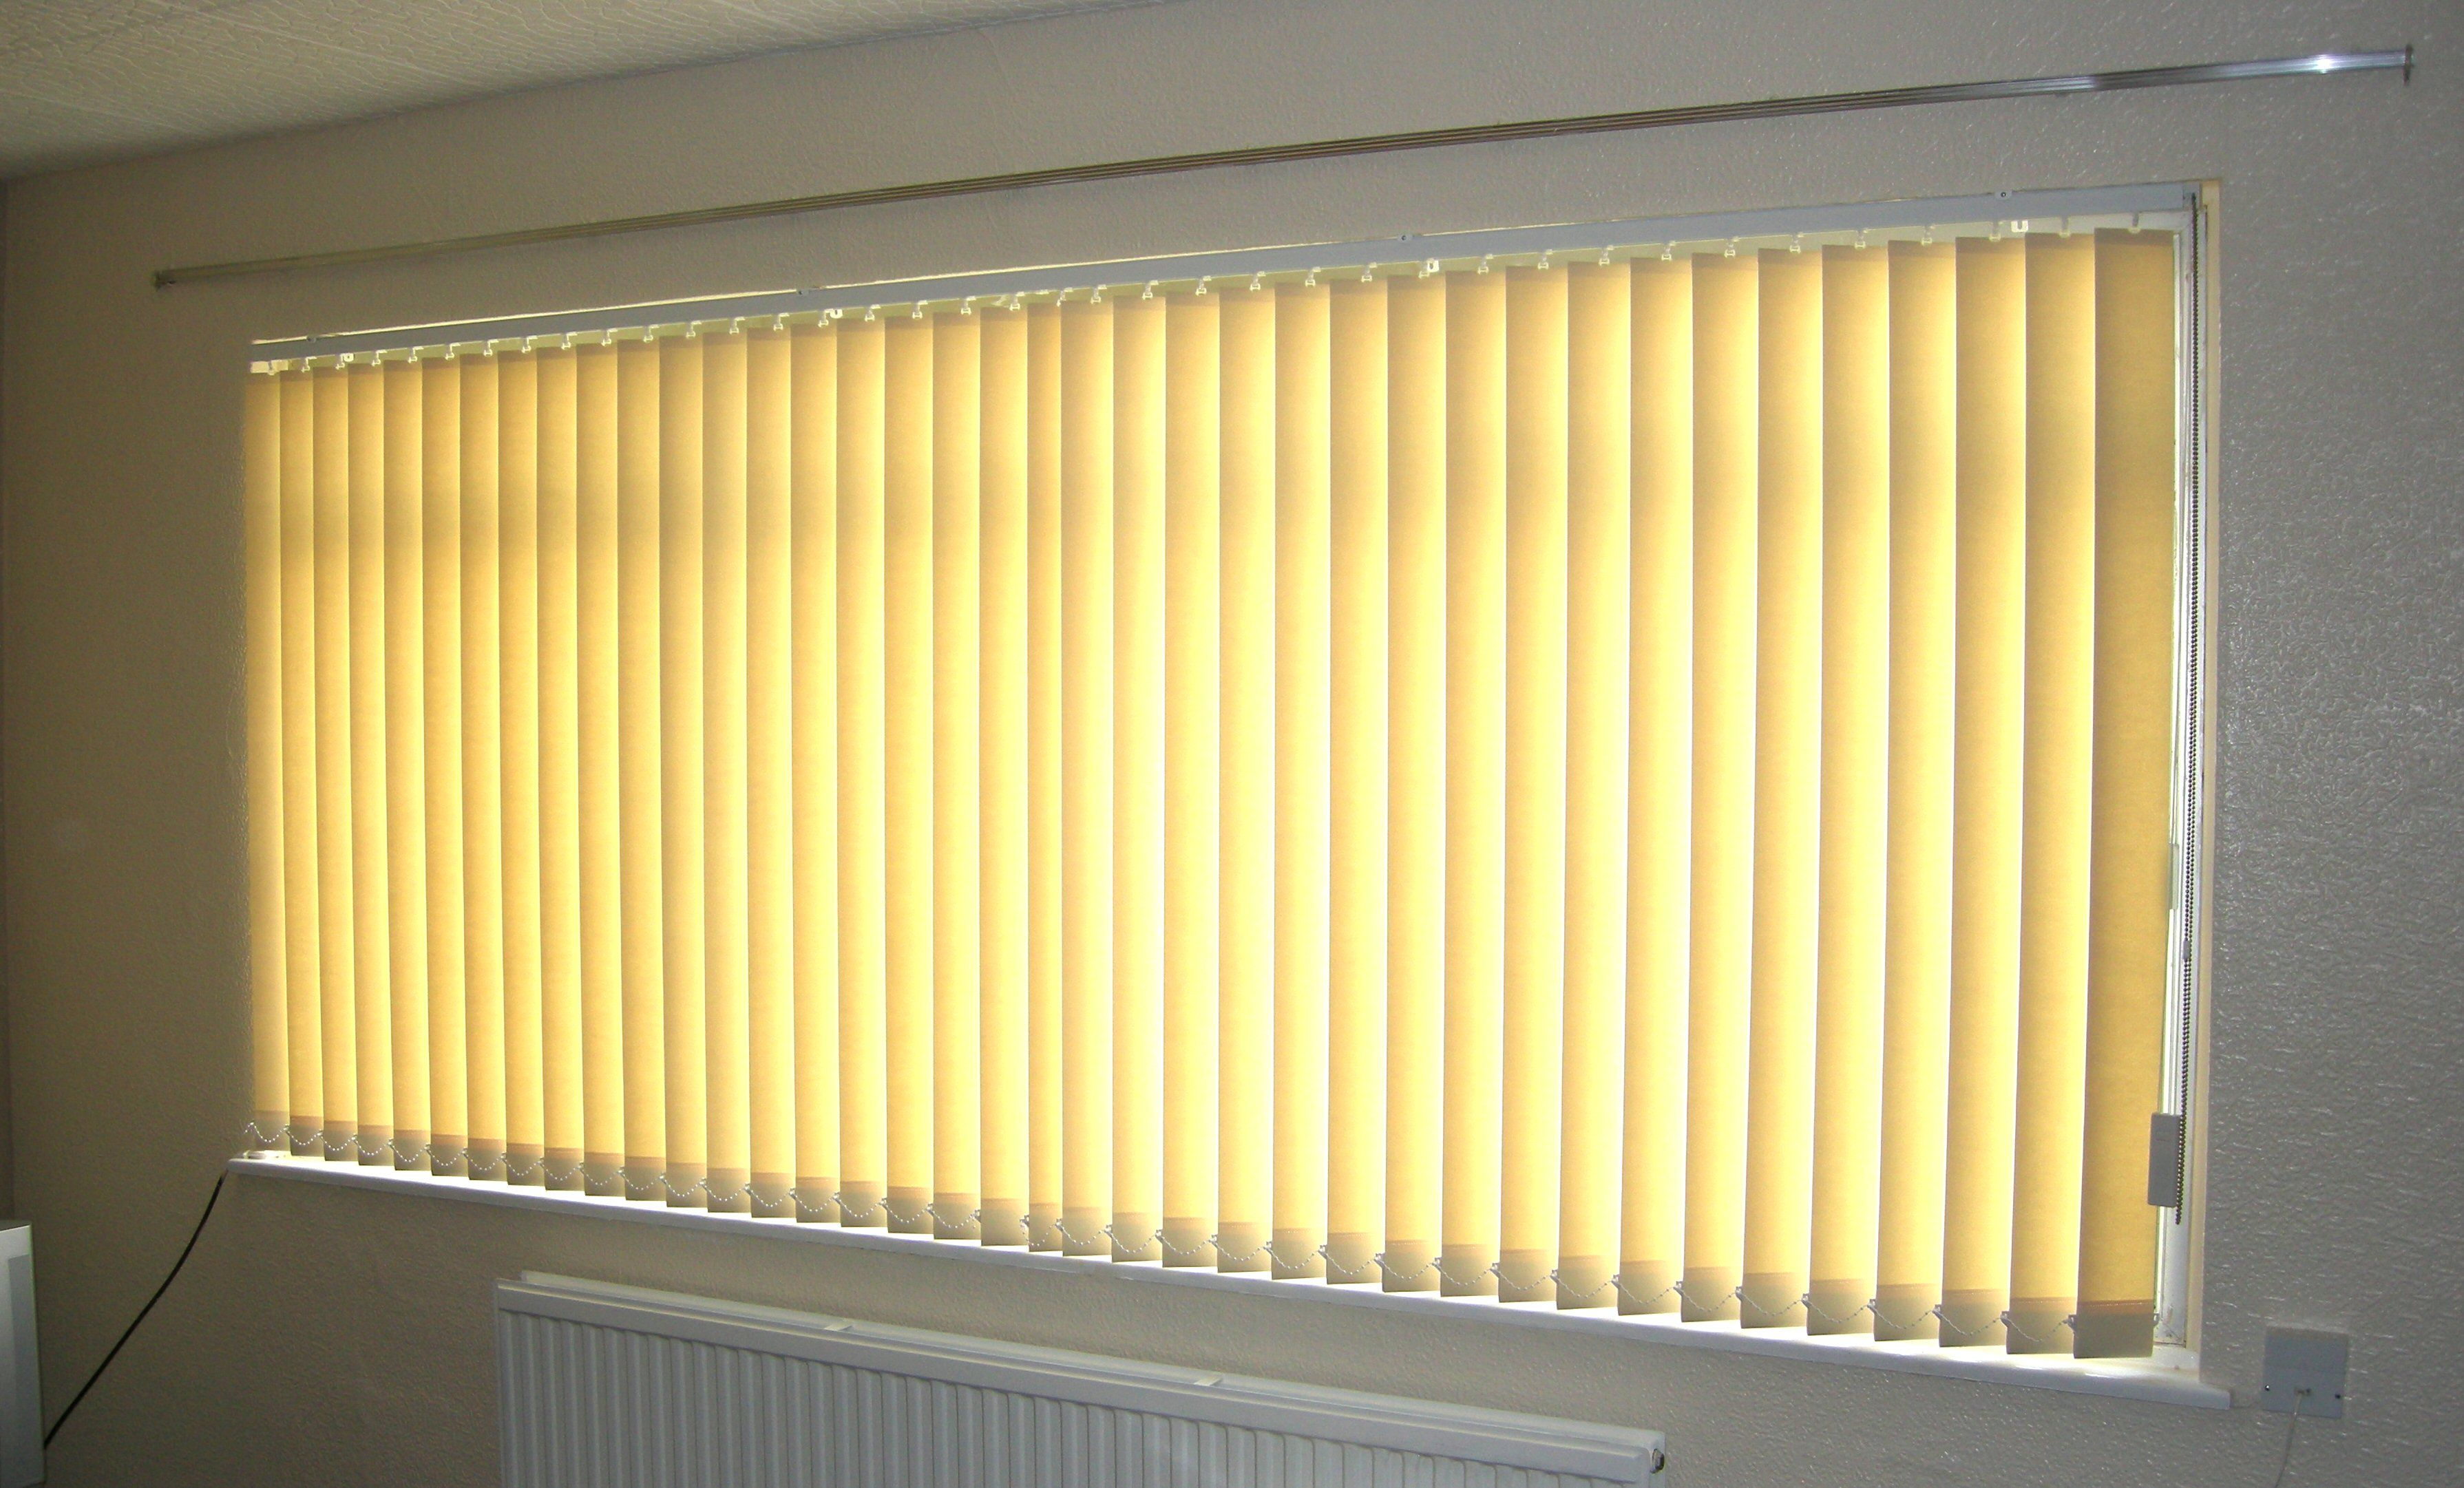 Mural of most common types of window blinds